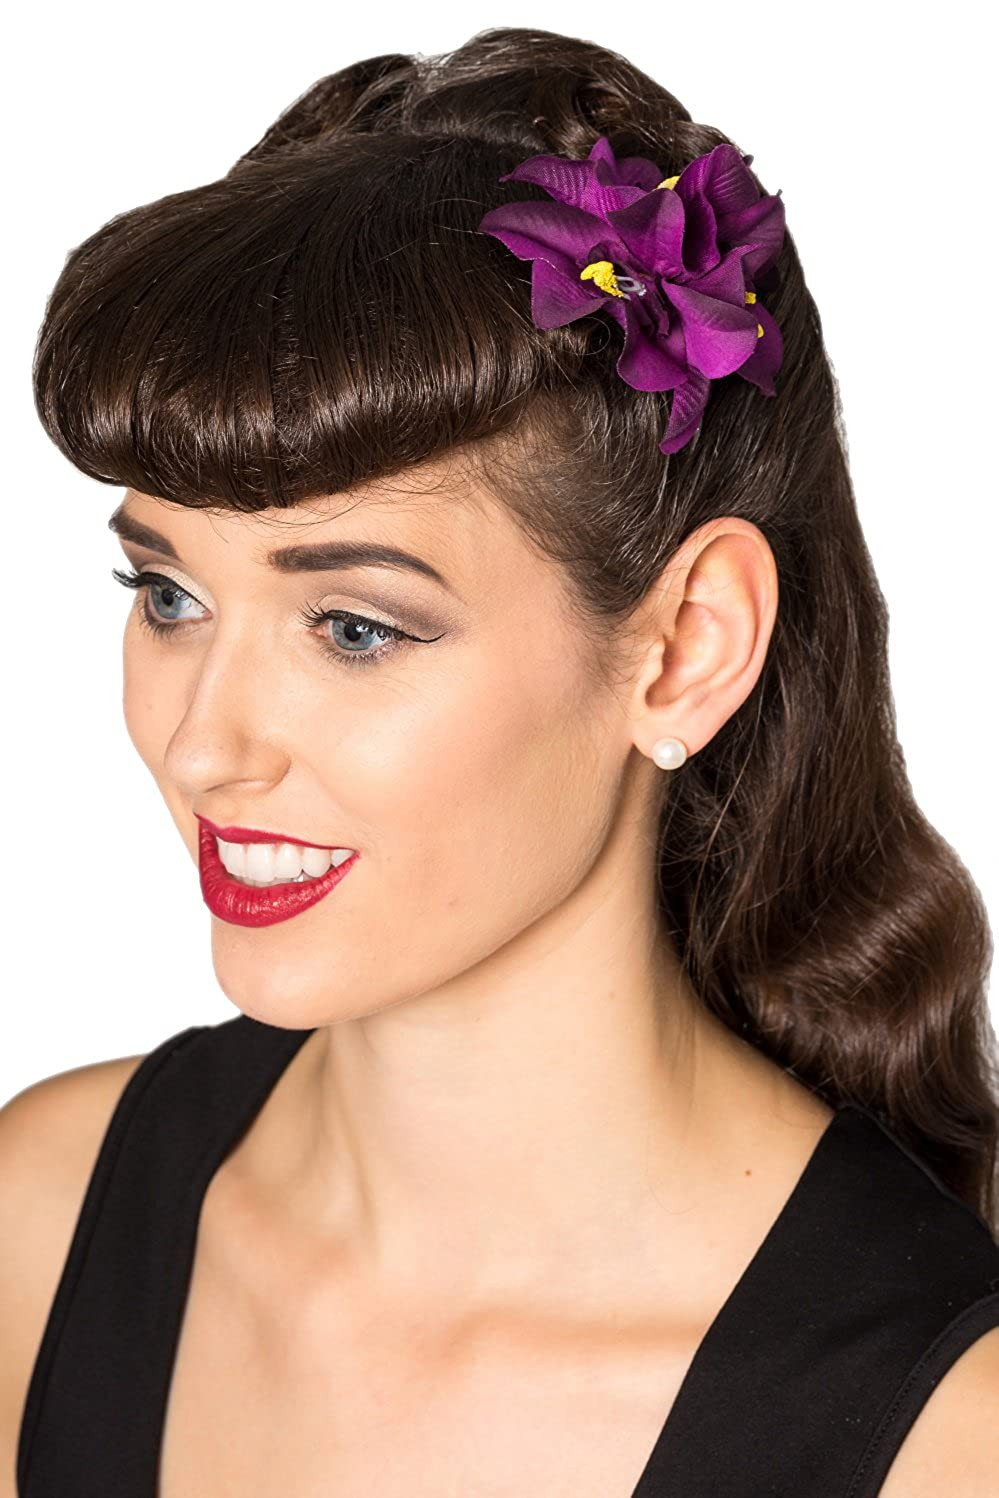 1940s Hairstyles- History of Women's Hairstyles Banned Off Duty Vintage Retro Hair Clip $3.95 AT vintagedancer.com